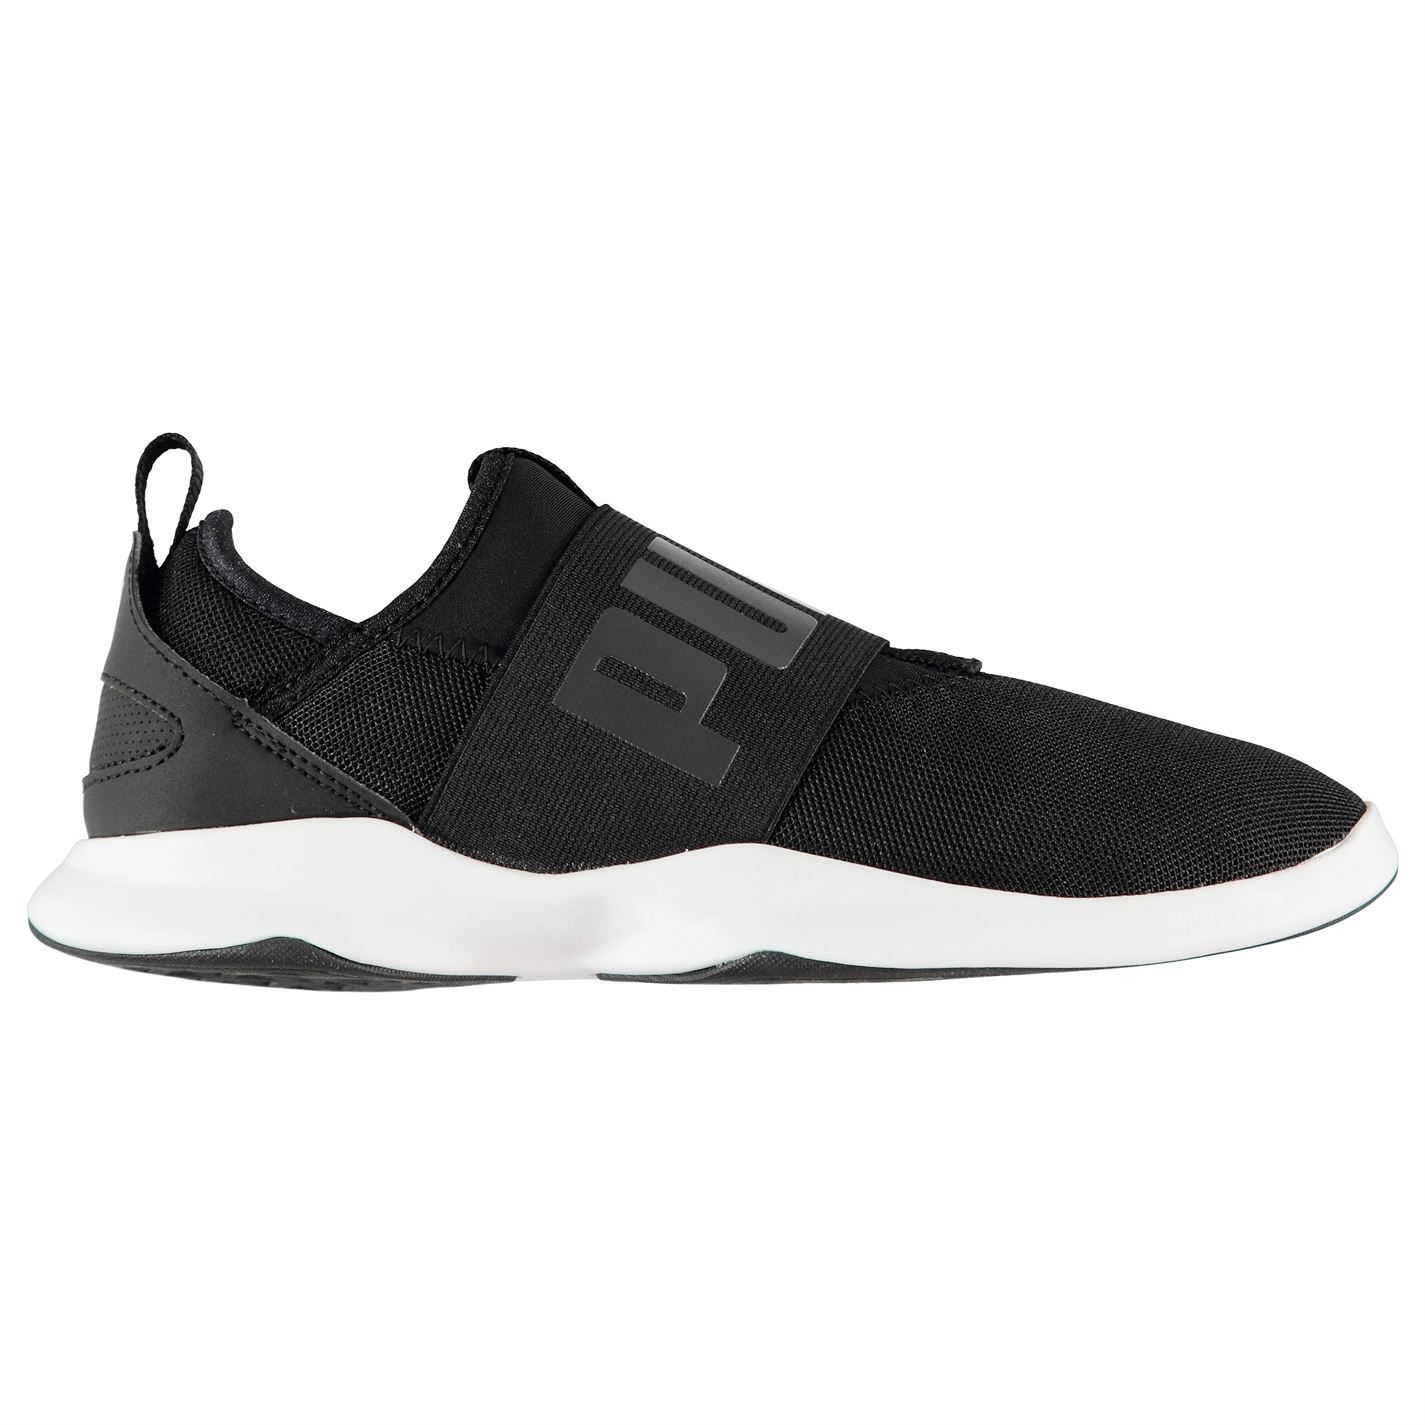 3a6e1f7ab21 Details about Puma Womens Dare Trainers Runners Slip On Textured